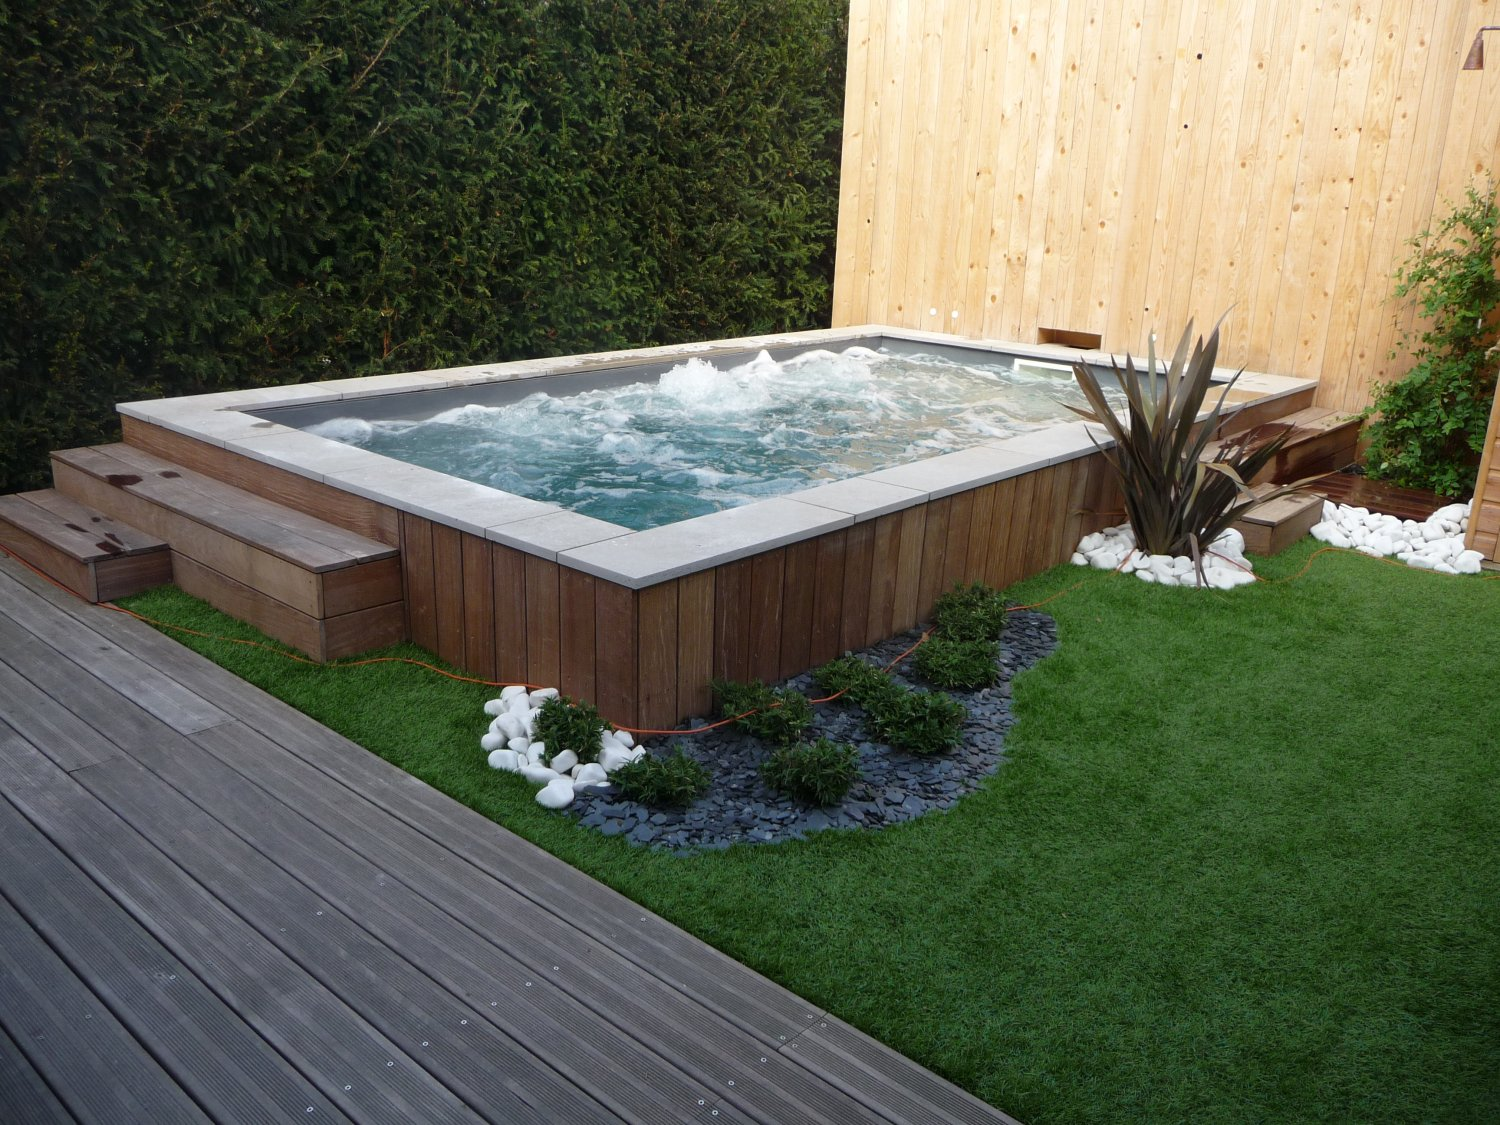 Am nager son jardin ext rieur faire une terrasse en bois for Amenager son exterieur